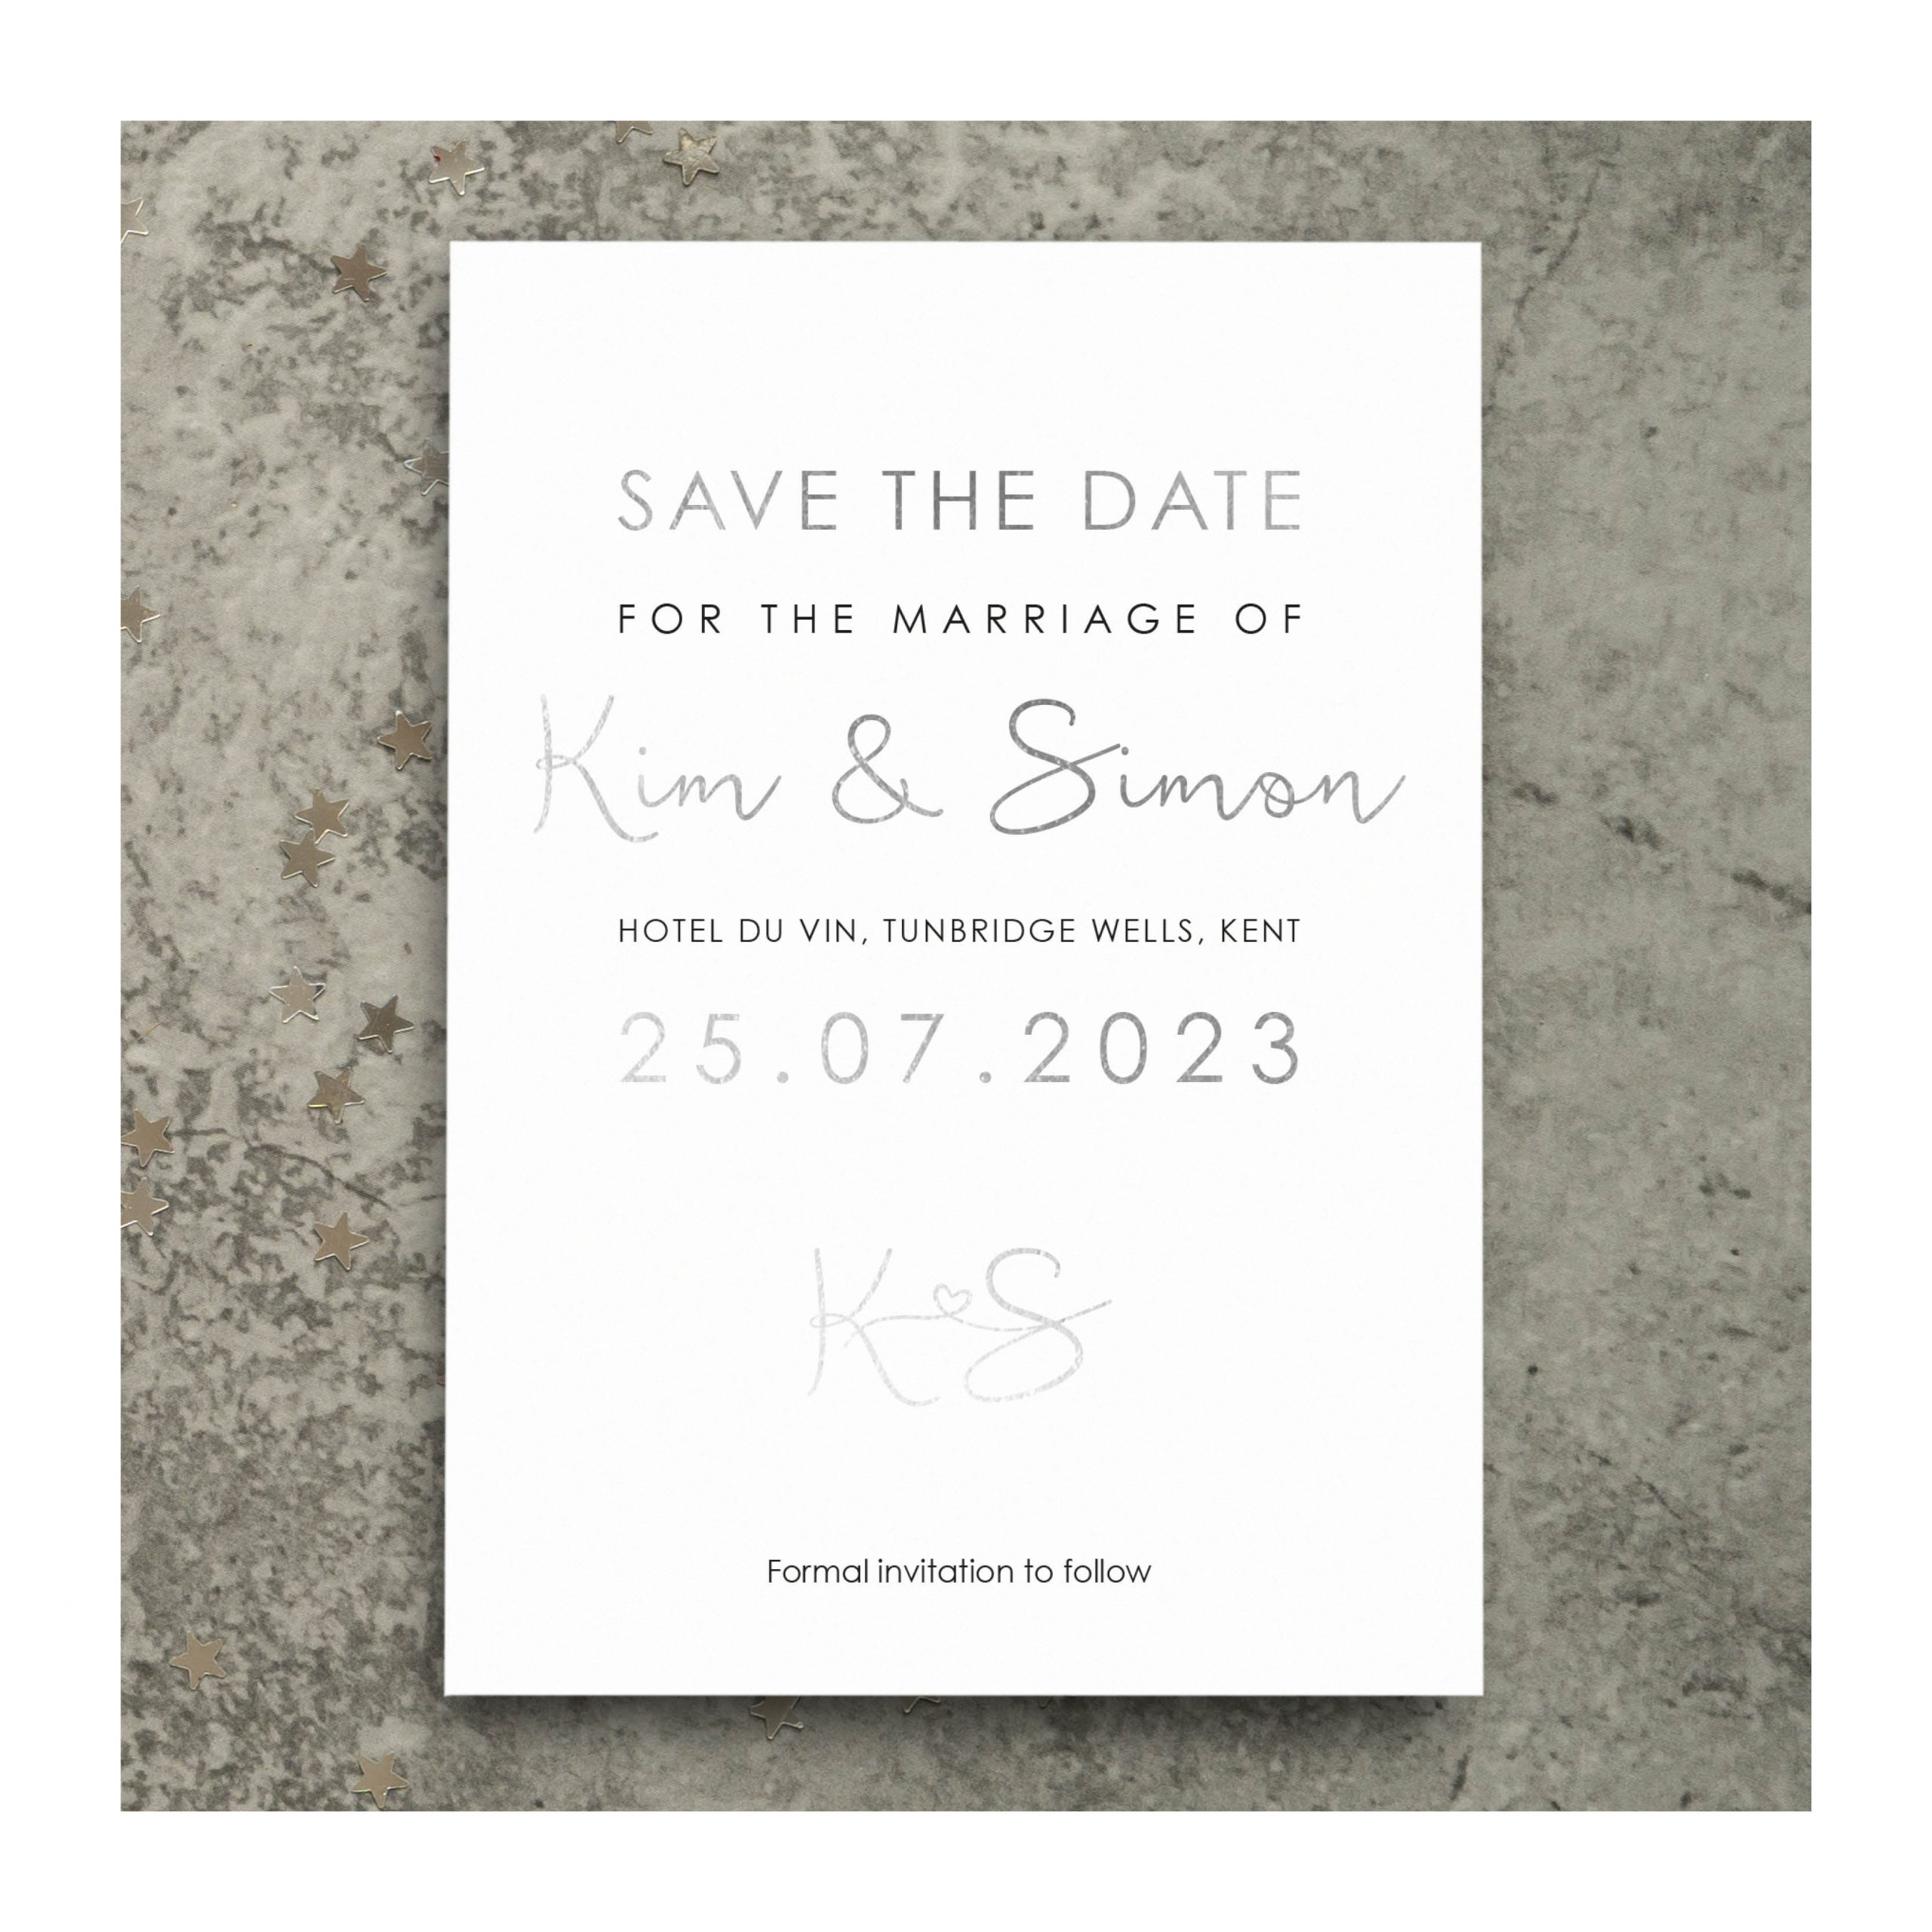 Heart motif save the date photo silver on white